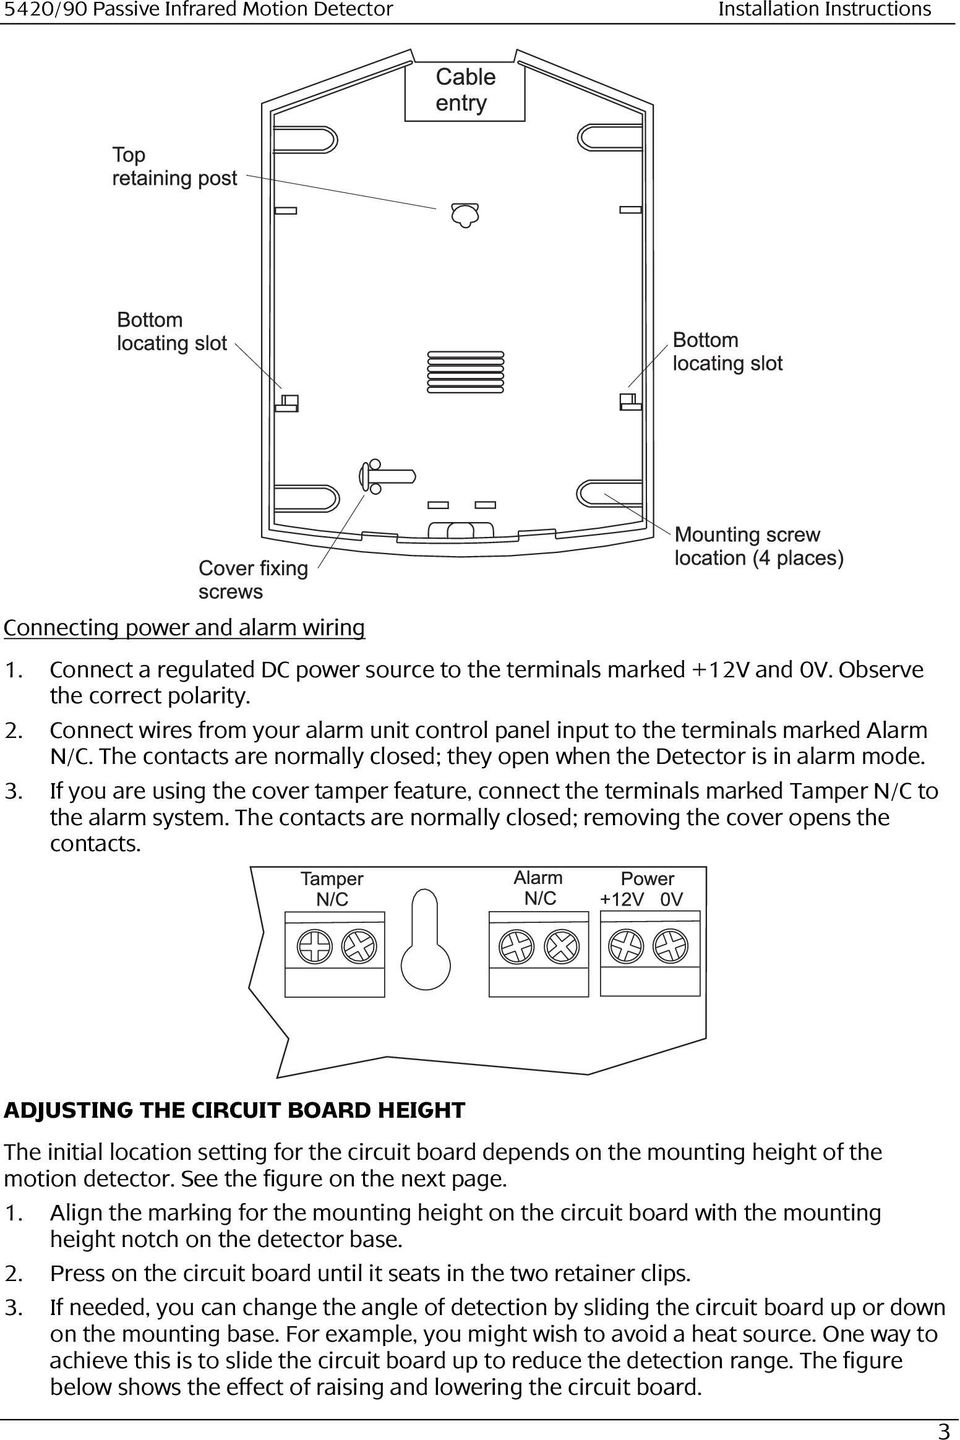 Passive Infrared Motion Detector 5420 90 Installation Instructions Power Circuit If You Are Using The Cover Tamper Feature Connect Terminals Marked N